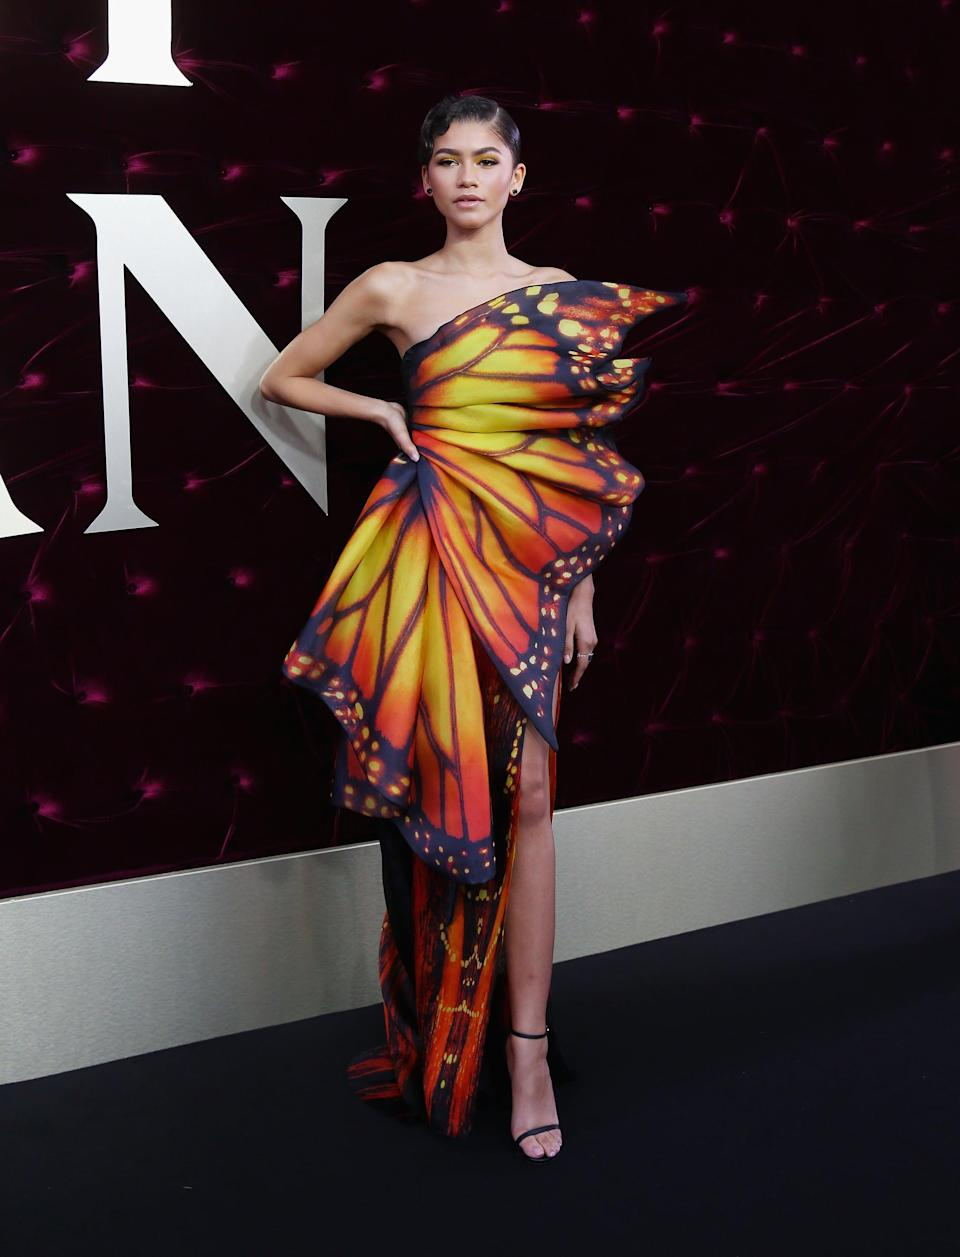 """<p><a href=""""https://www.popsugar.com/fashion/Zendaya-Butterfly-Dress-Greatest-Showman-Premiere-44444355"""" class=""""link rapid-noclick-resp"""" rel=""""nofollow noopener"""" target=""""_blank"""" data-ylk=""""slk:Zendaya's Moschino butterfly dress"""">Zendaya's Moschino butterfly dress</a> at the Australia premiere of <strong>The Greatest Showman</strong> called for little more than a pair of Stuart Weitzman sandals. She arrived to the carpet under an umbrella, sheltered from the rain and ready to spread her wings.<br> </p><hr>"""